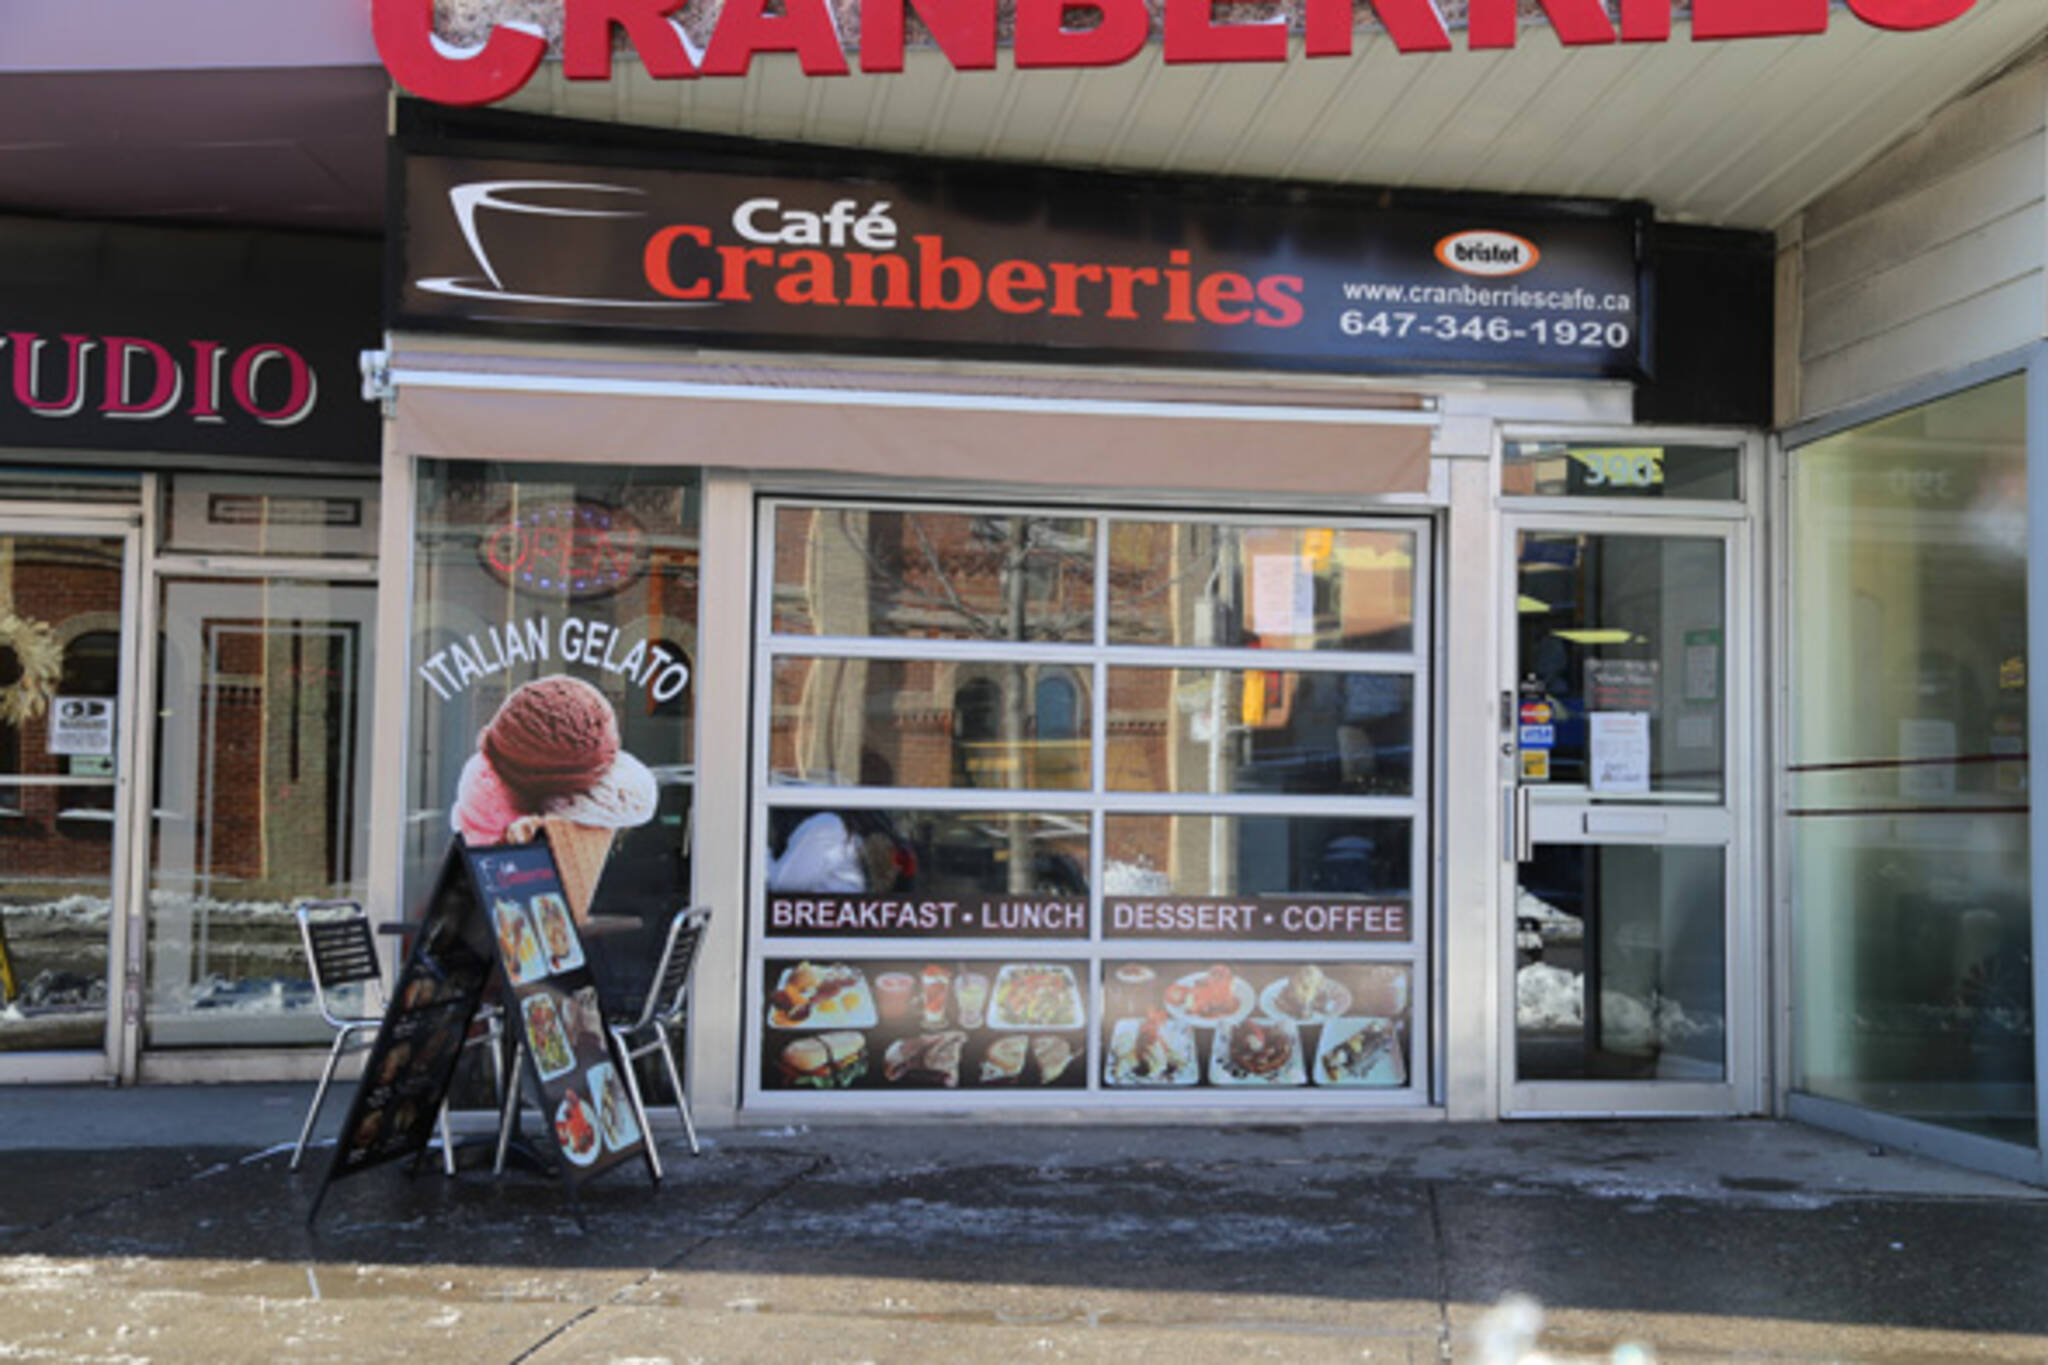 Cafe Cranberries toronto